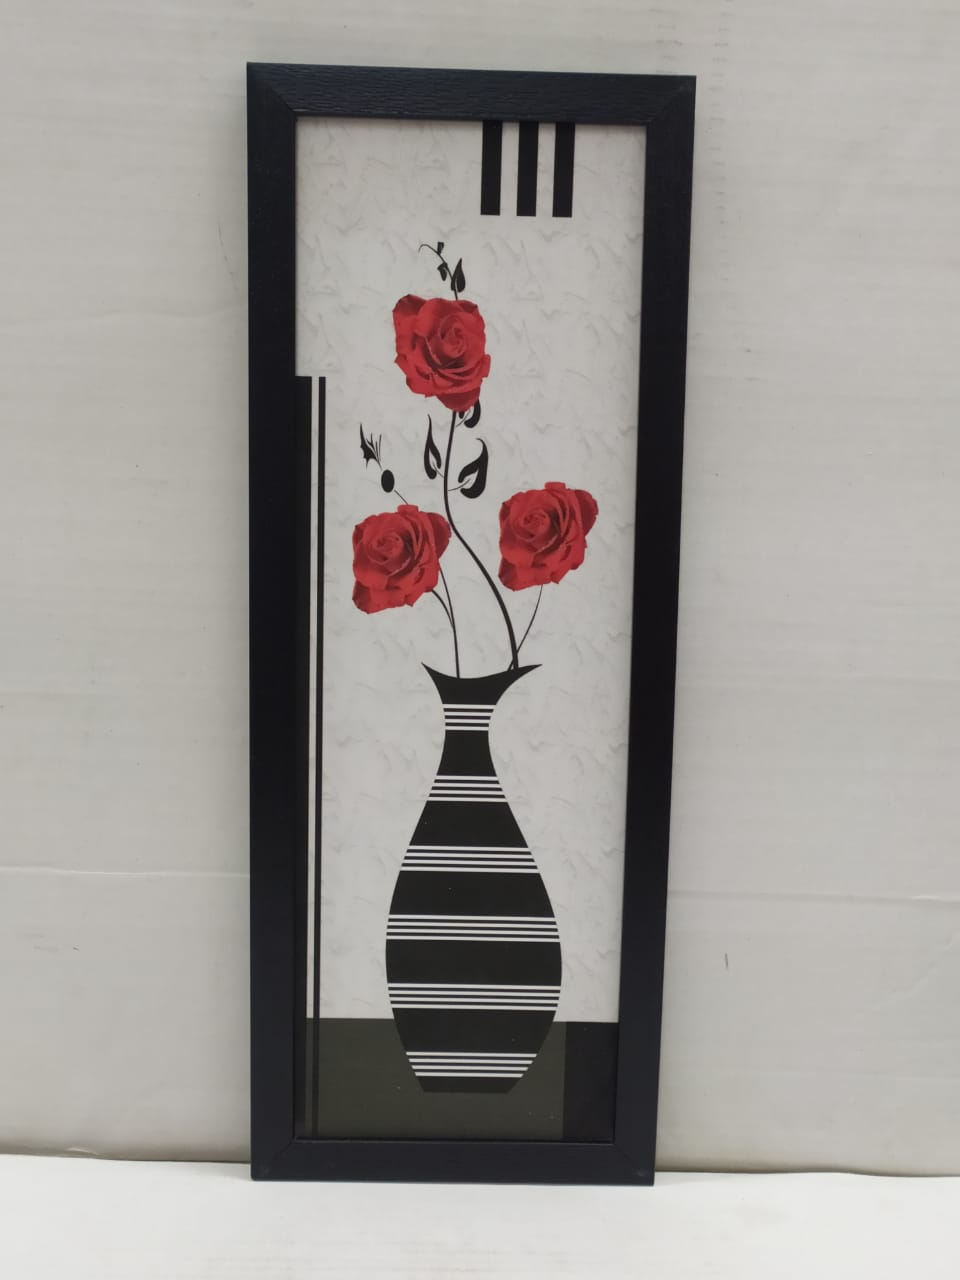 Buy Flower Vase Scenery Picture Wall Frame Without Glass (NY198)Online